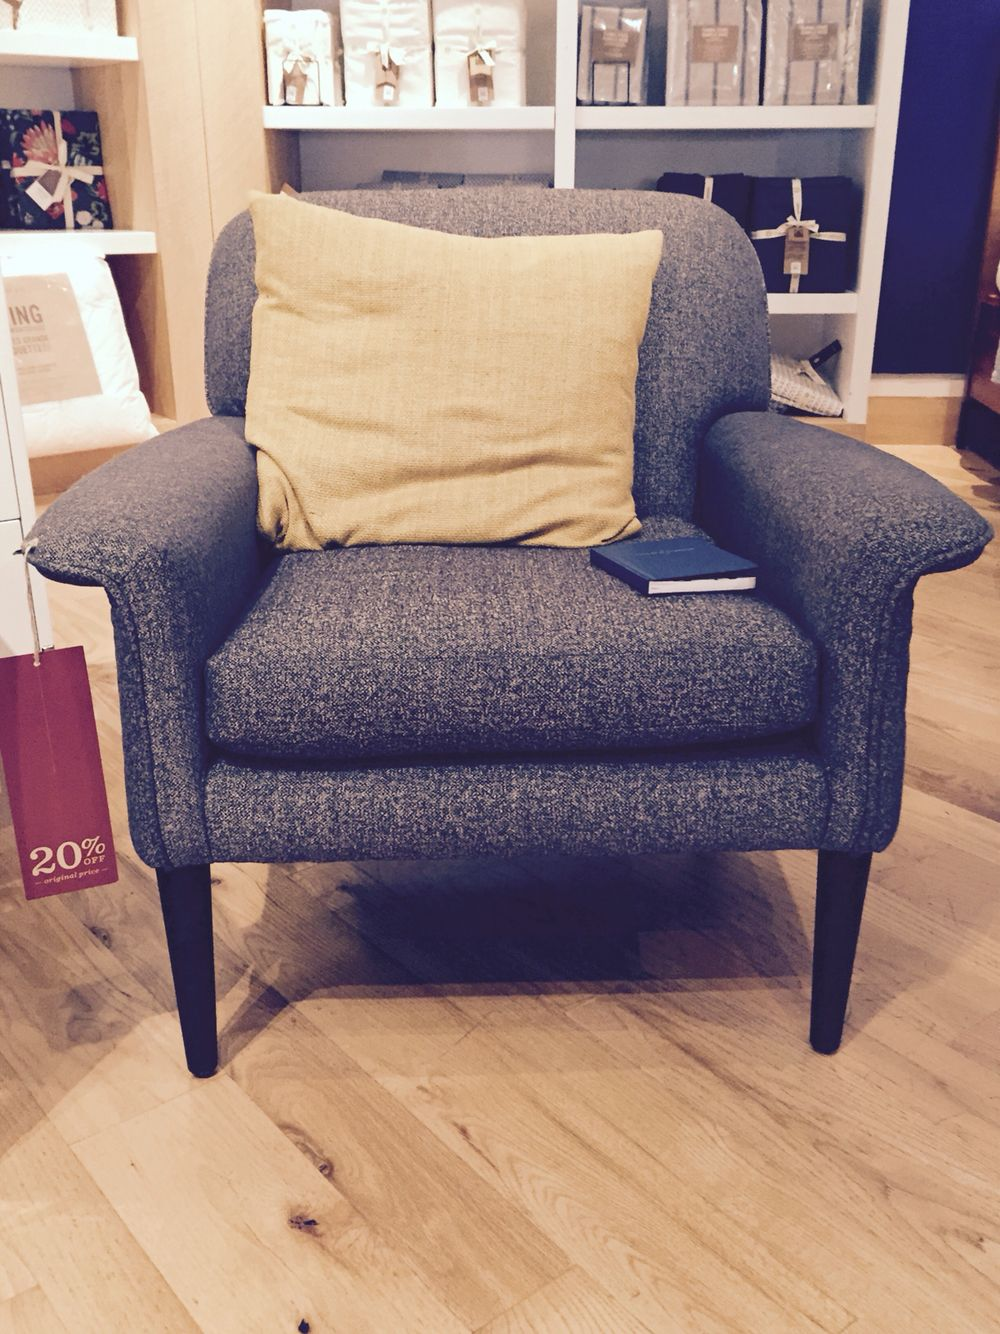 Strange West Elm Anders Chair Ideas For The House Accent Chairs Uwap Interior Chair Design Uwaporg